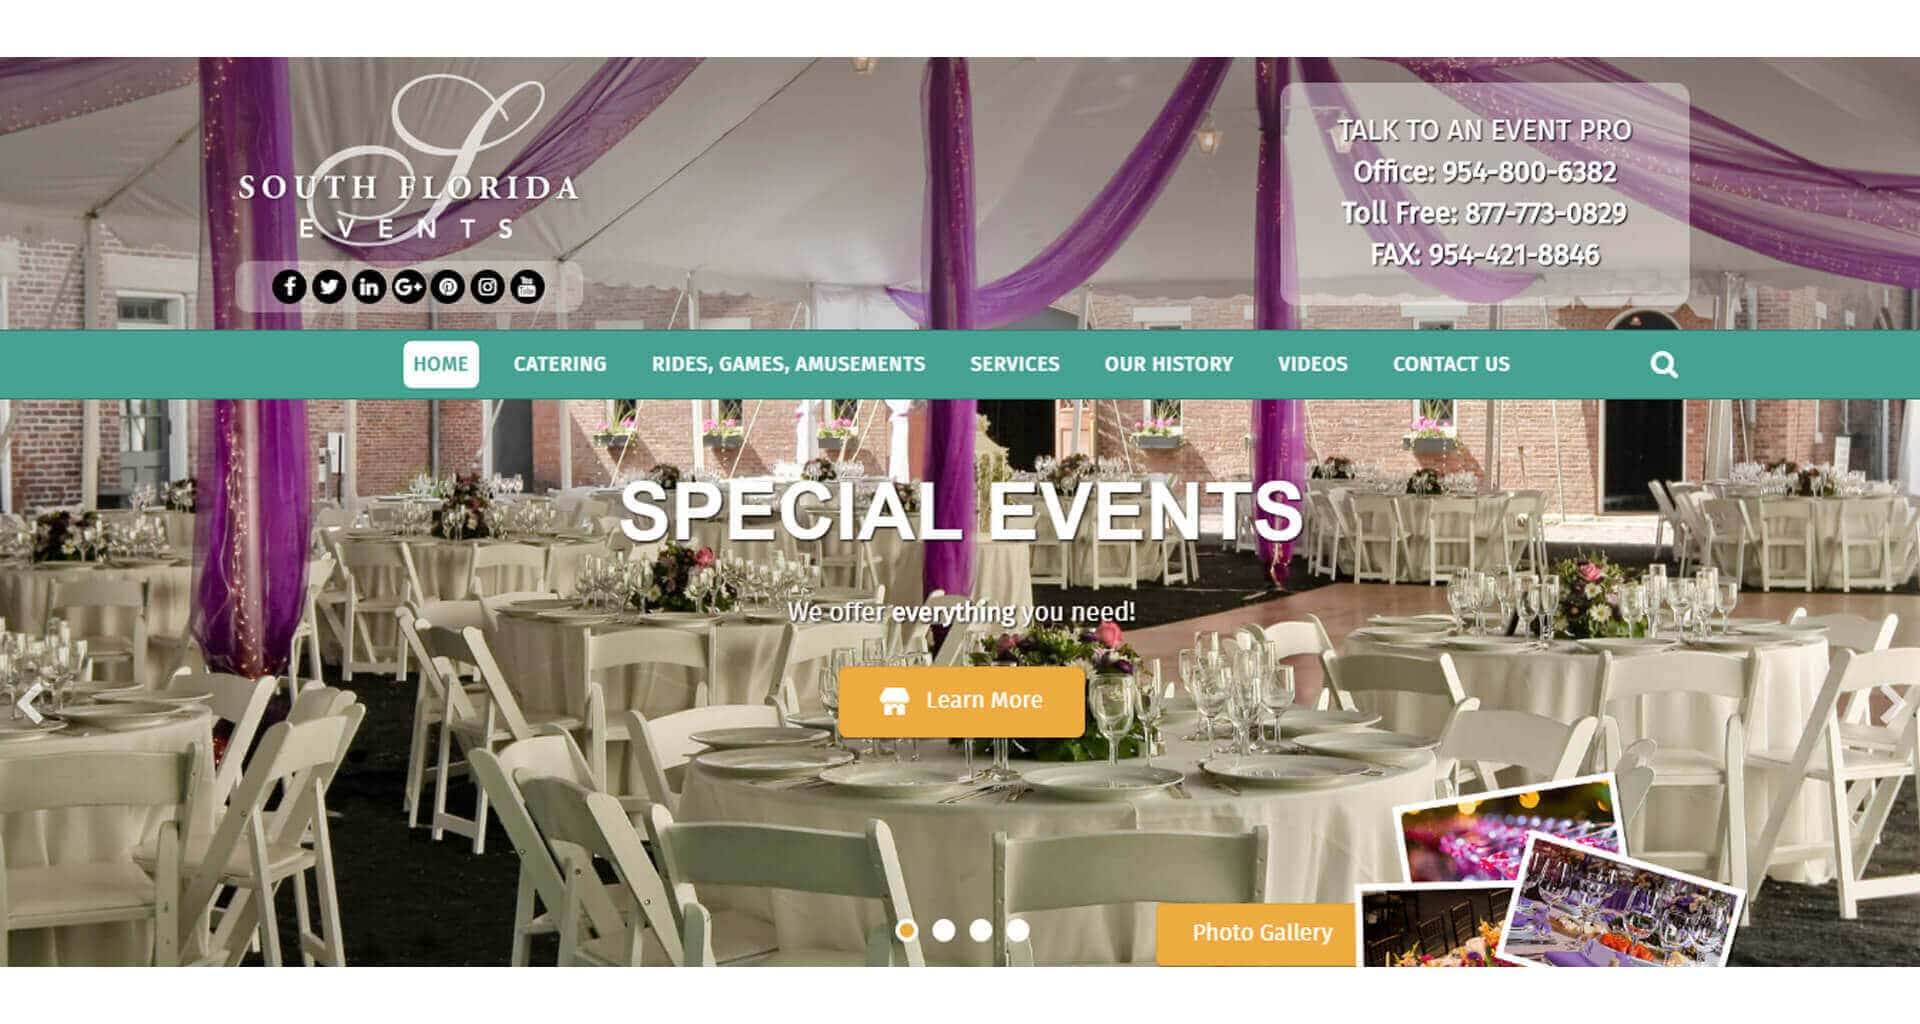 South Florida Events - Case Study